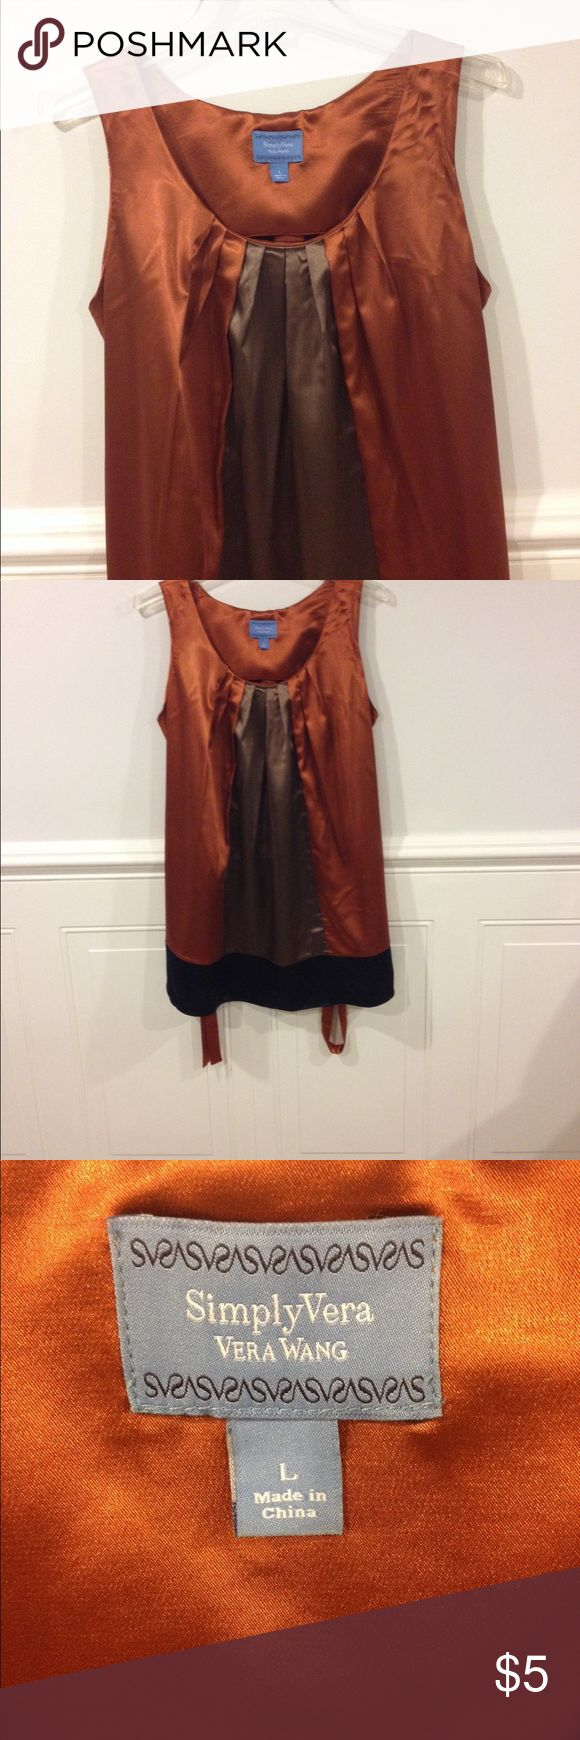 Simply Vera Large top good condition Size Large Simply Vera top good condition Simply Vera Vera Wang Tops